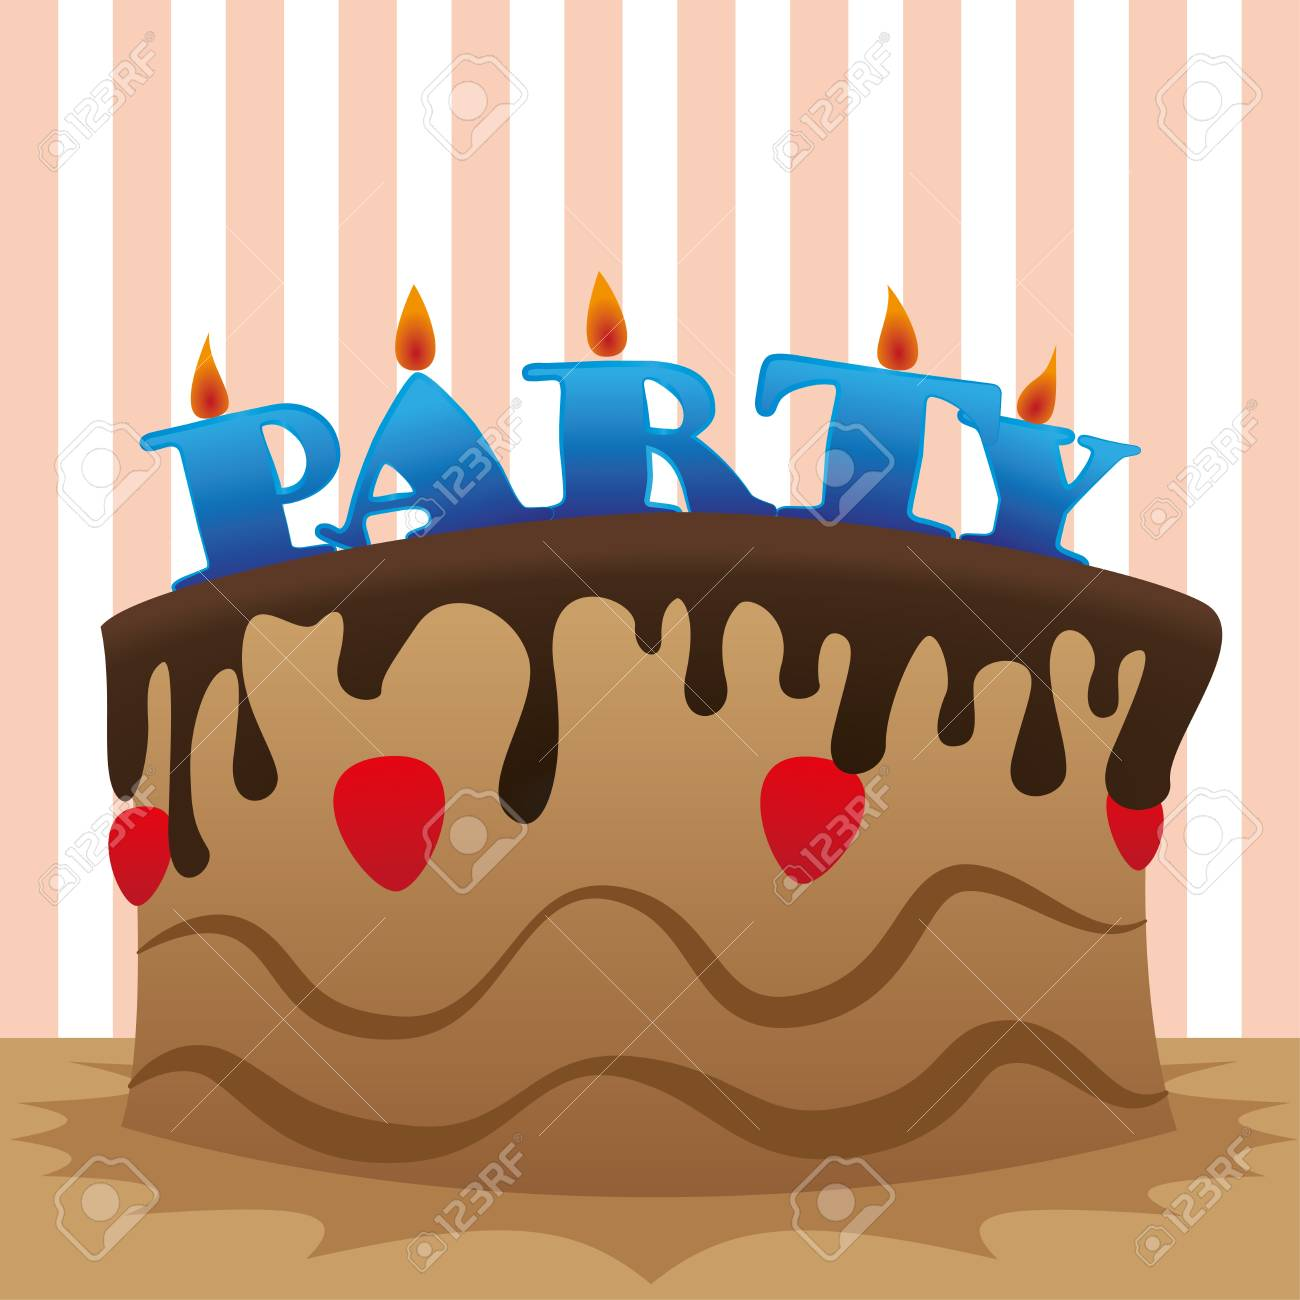 cake party over lines background vector illustration Stock Vector - 20499960